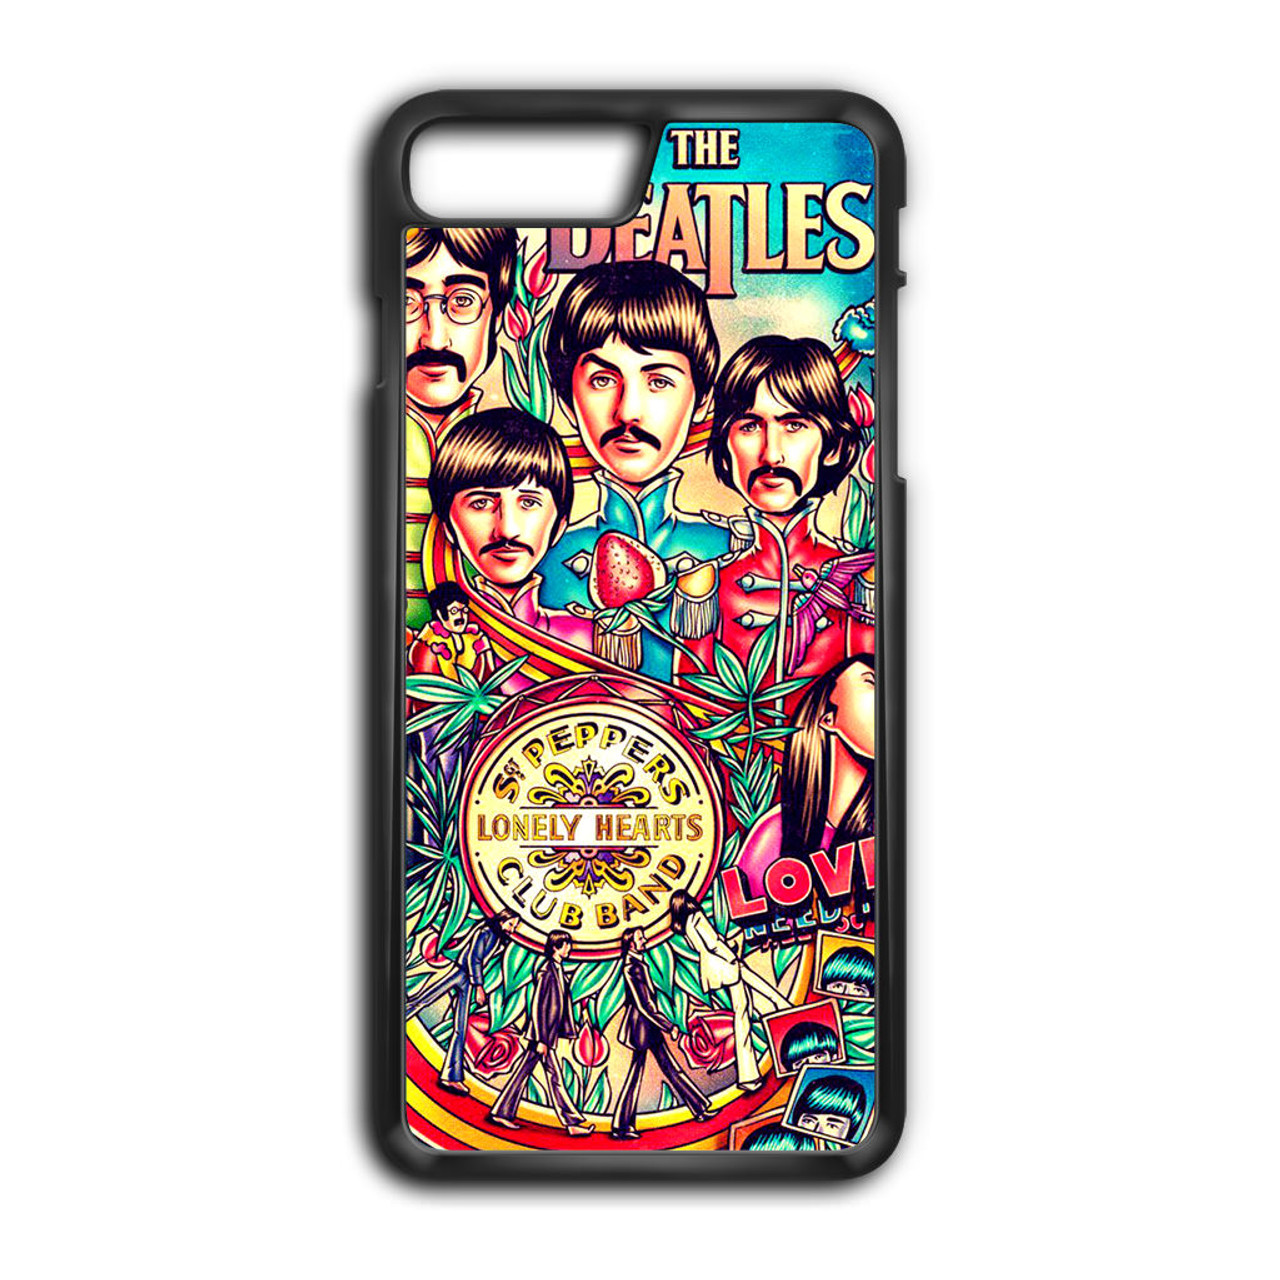 info for 632af 8b8c0 The Beatles Vintage Poster iPhone 8 Plus Case